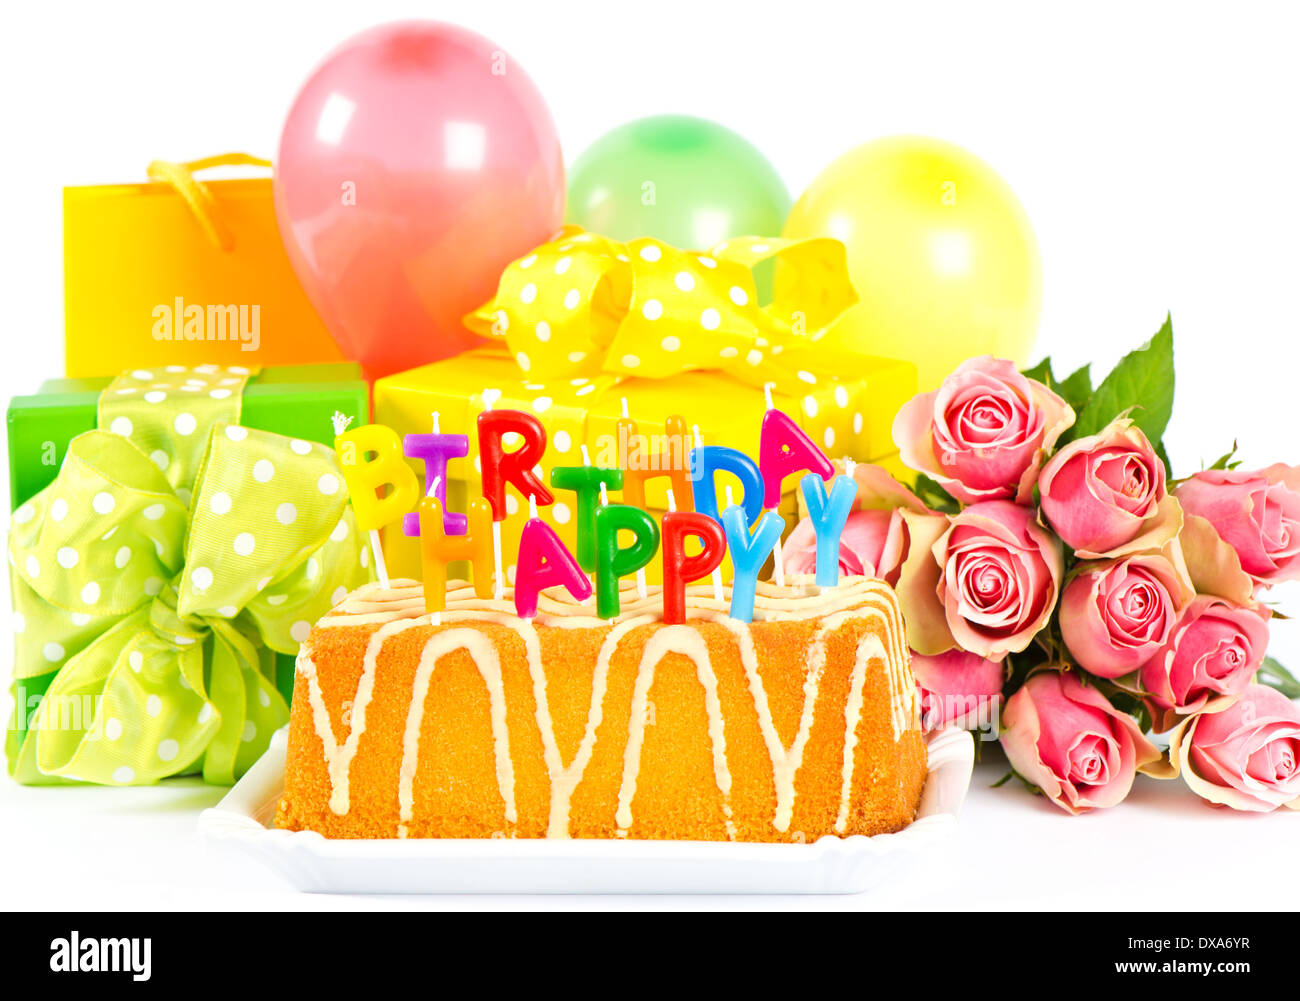 Happy Birthday Party Decoration With Roses Flowers Cake Balloons Gifts And Candles